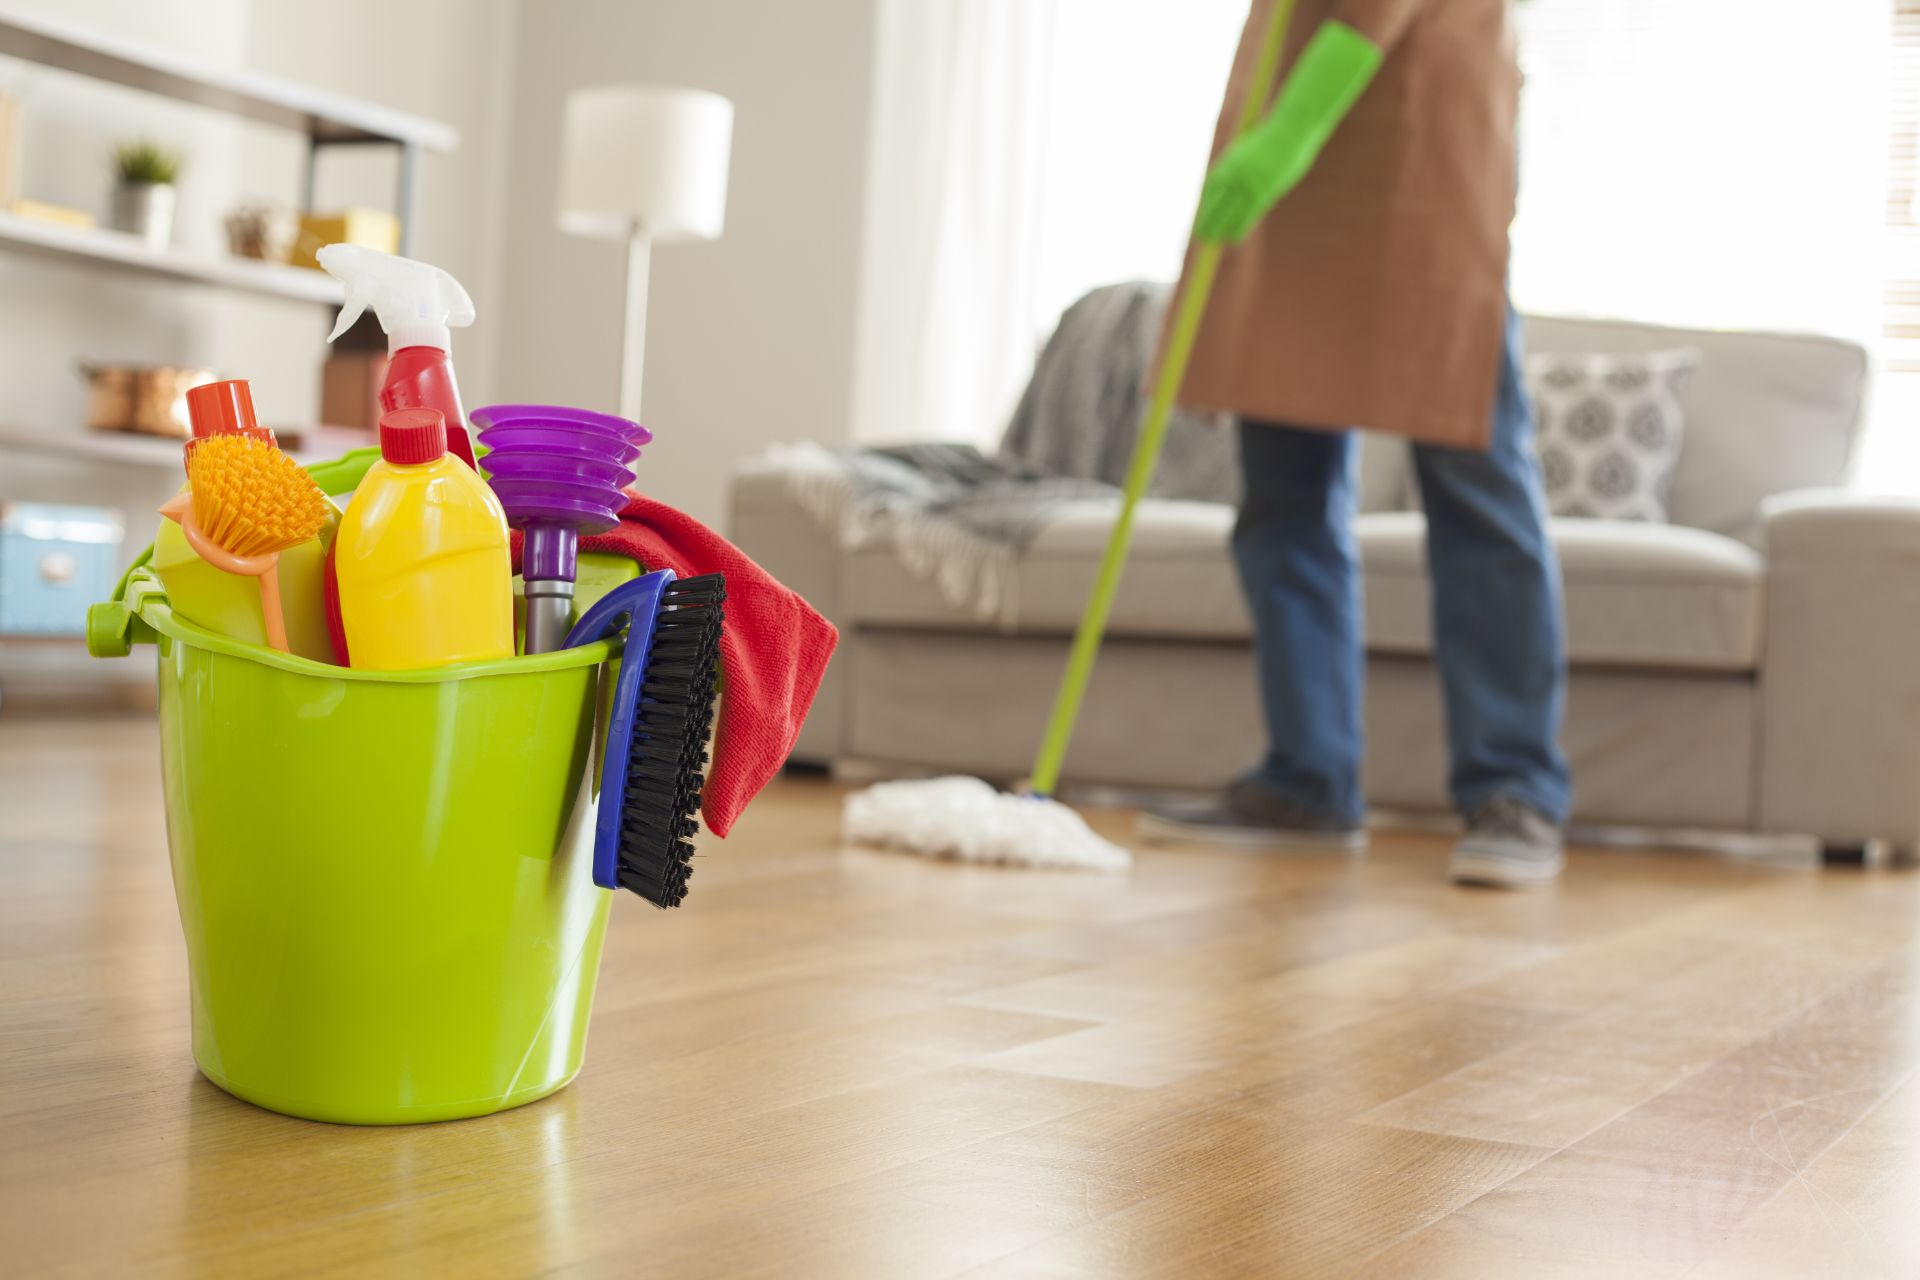 Janitor-Janitorial+Services-Atlanta-023